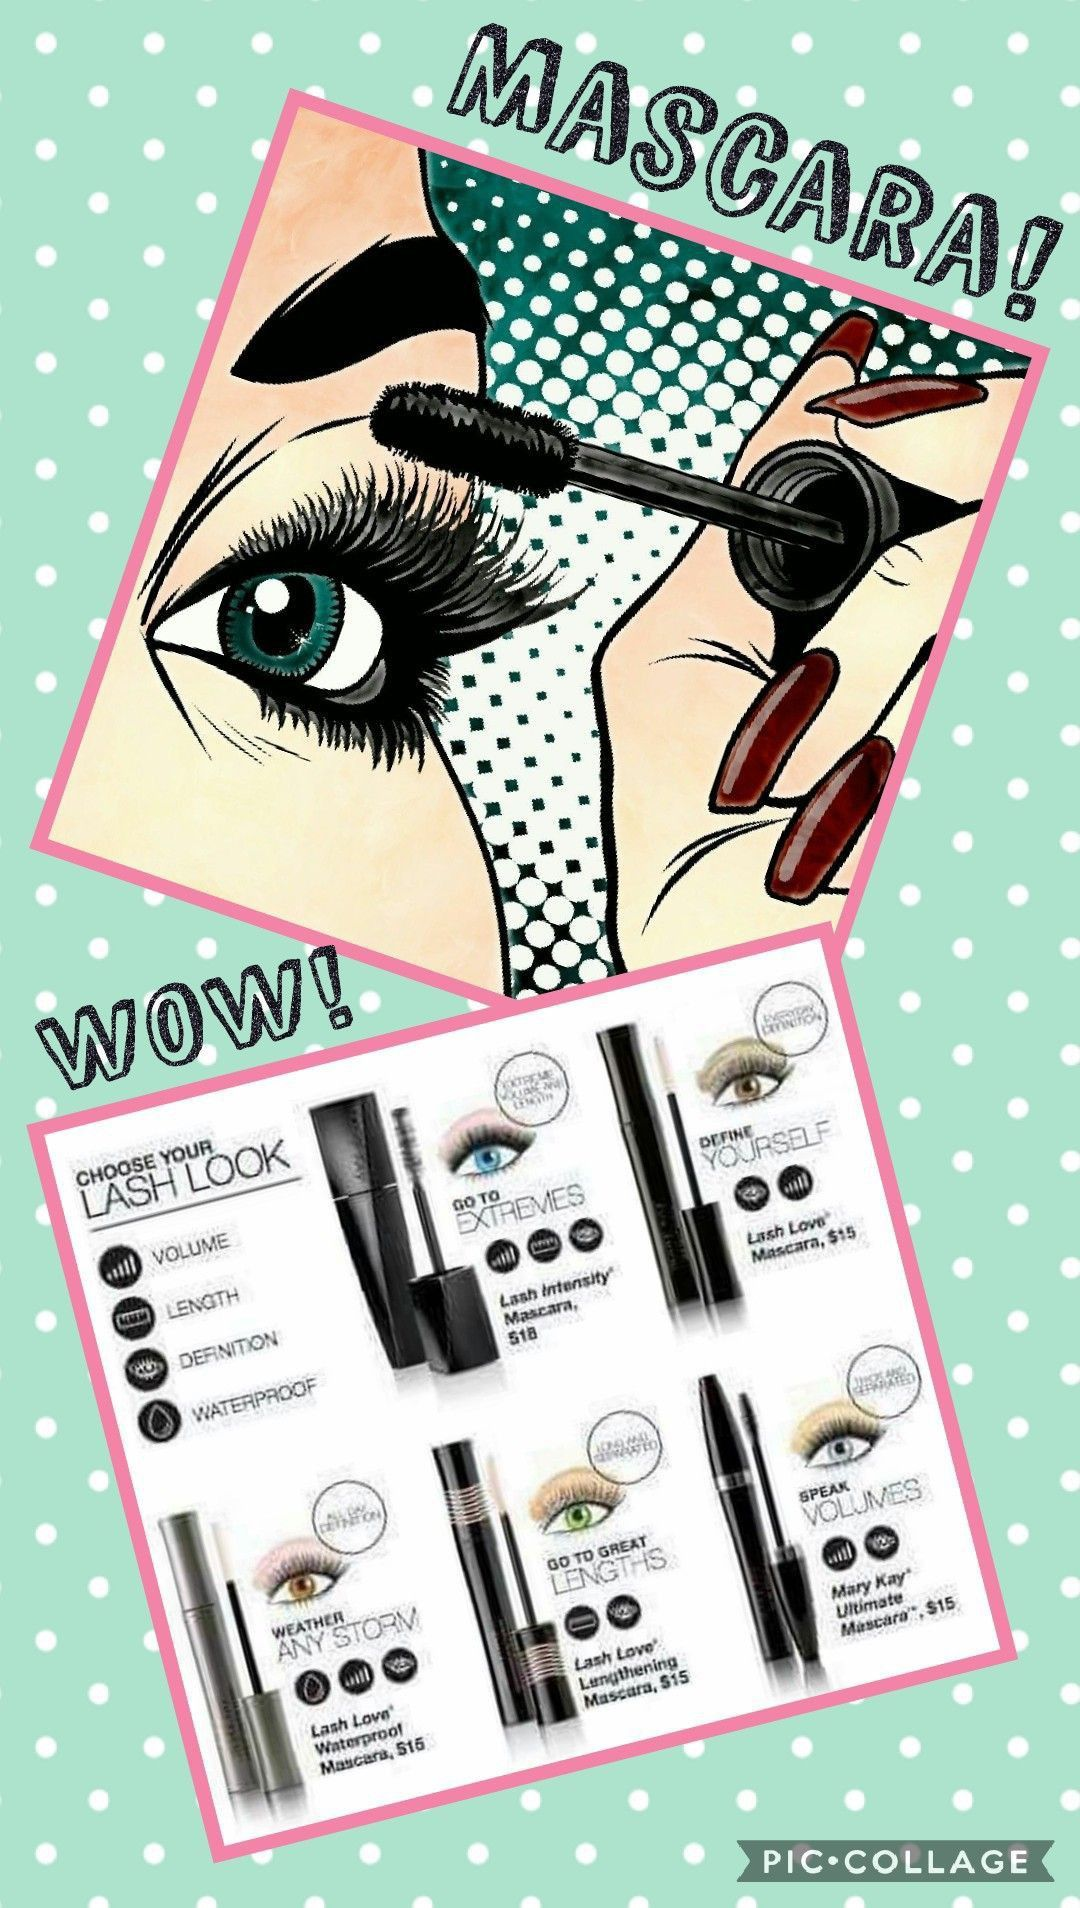 f2b916f82cb What's your favorite mascara?! www.marykay.com/hhollin | Mary Kay ...